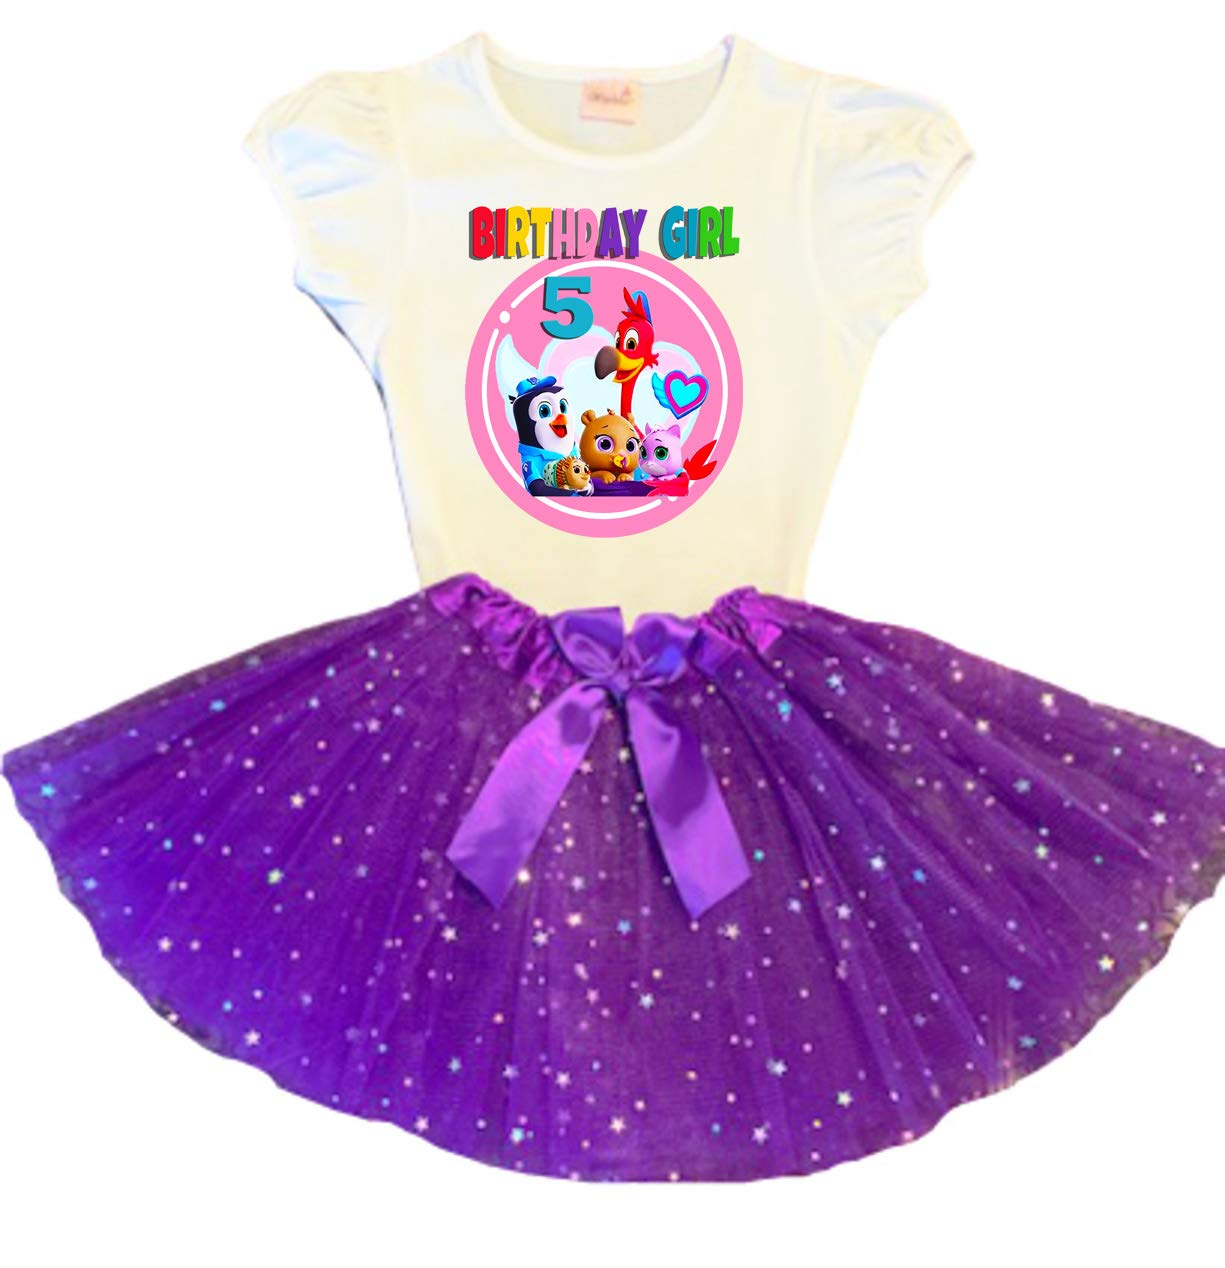 TOTS Birthday Tutu 5th Outlet SALE Party Ranking TOP15 Dress S Outfit Purple